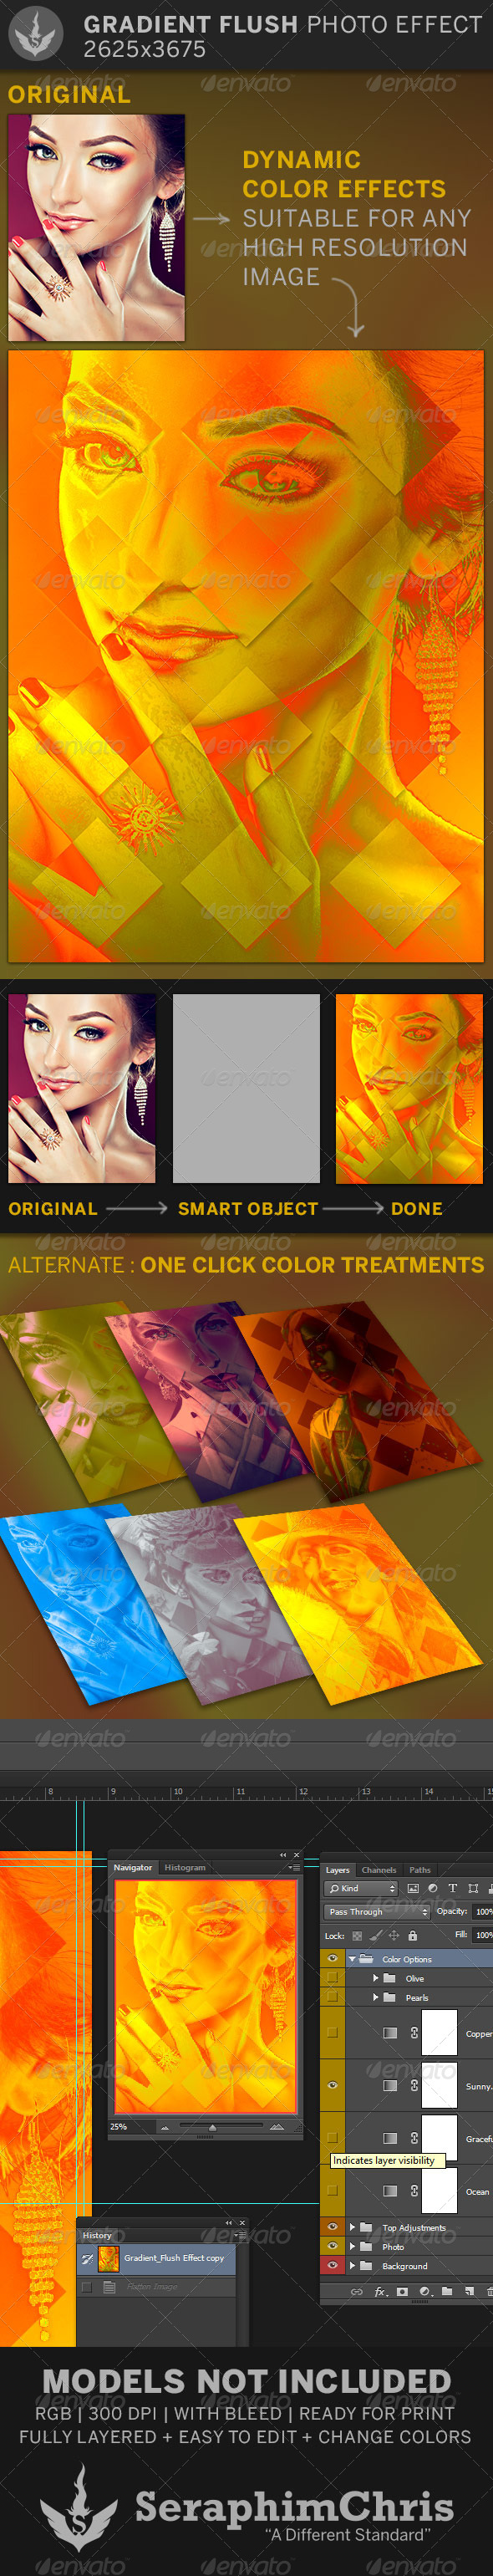 GraphicRiver Gradient Flush 2 Photo Effect Template 6760900